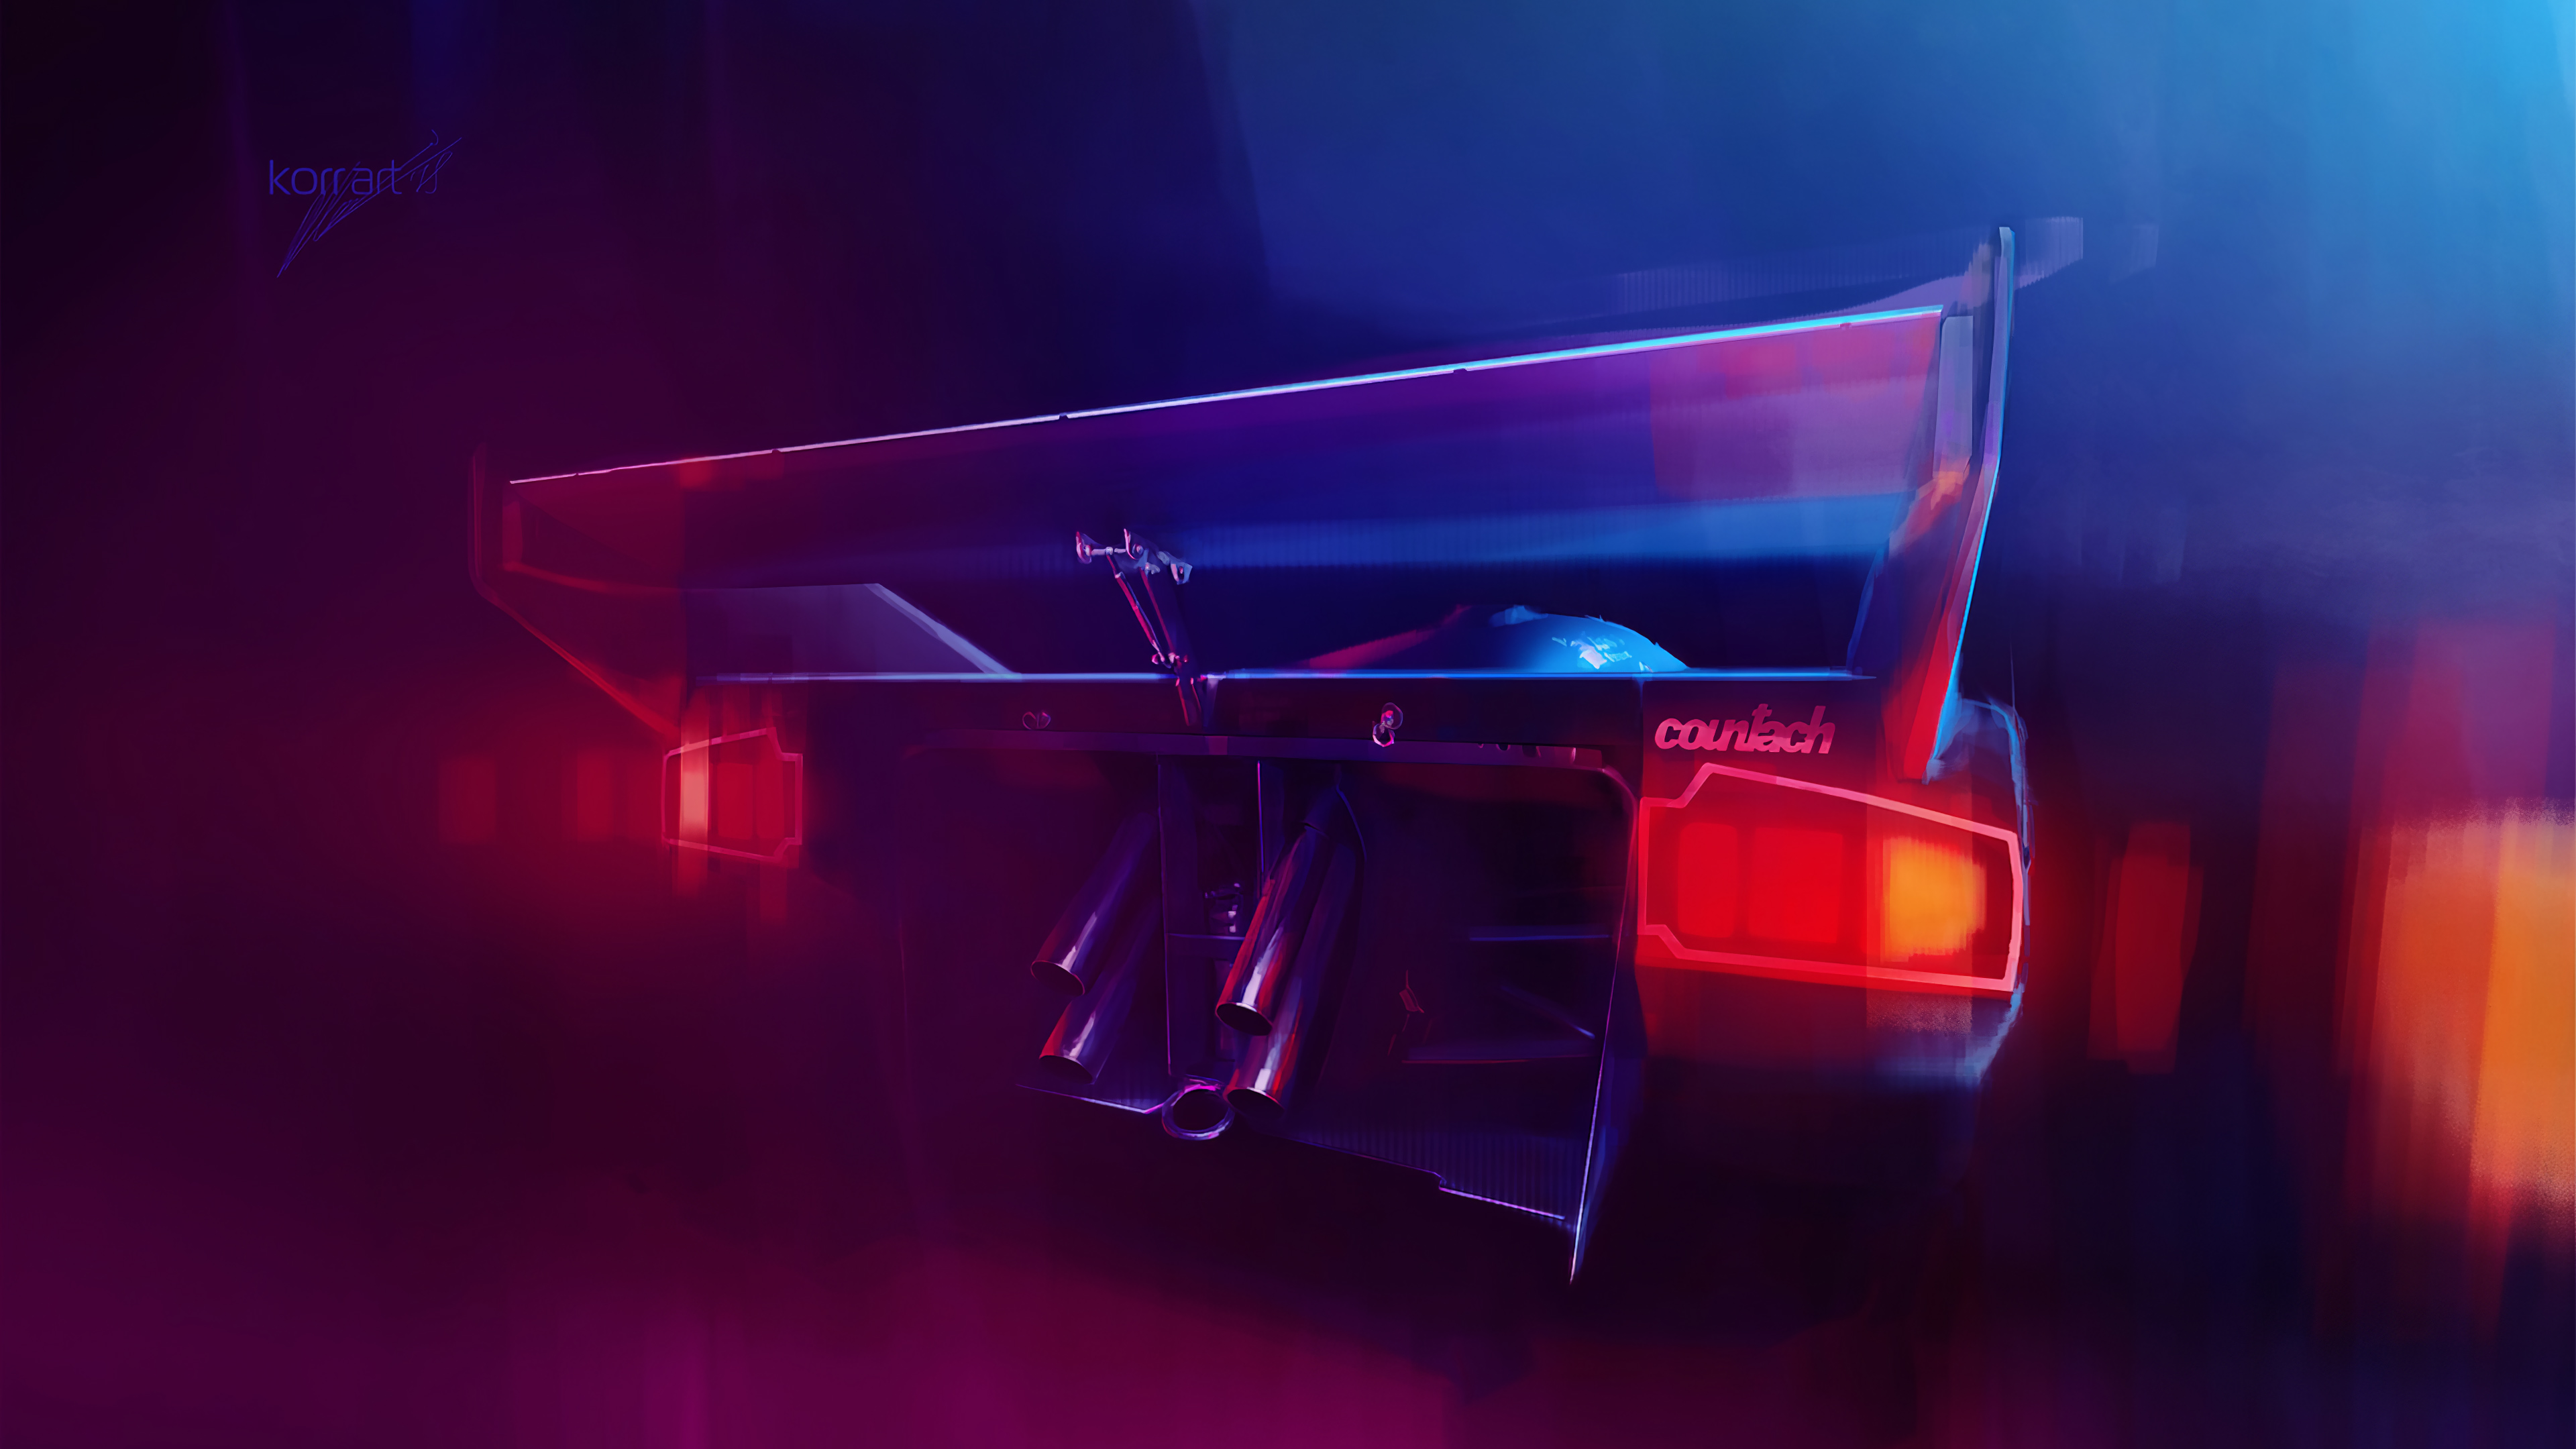 lamborghini countach digital art 1563221055 - Lamborghini Countach Digital Art - lamborghini wallpapers, lamborghini countach wallpapers, hd-wallpapers, digital art wallpapers, cars wallpapers, behance wallpapers, artwork wallpapers, artist wallpapers, 4k-wallpapers